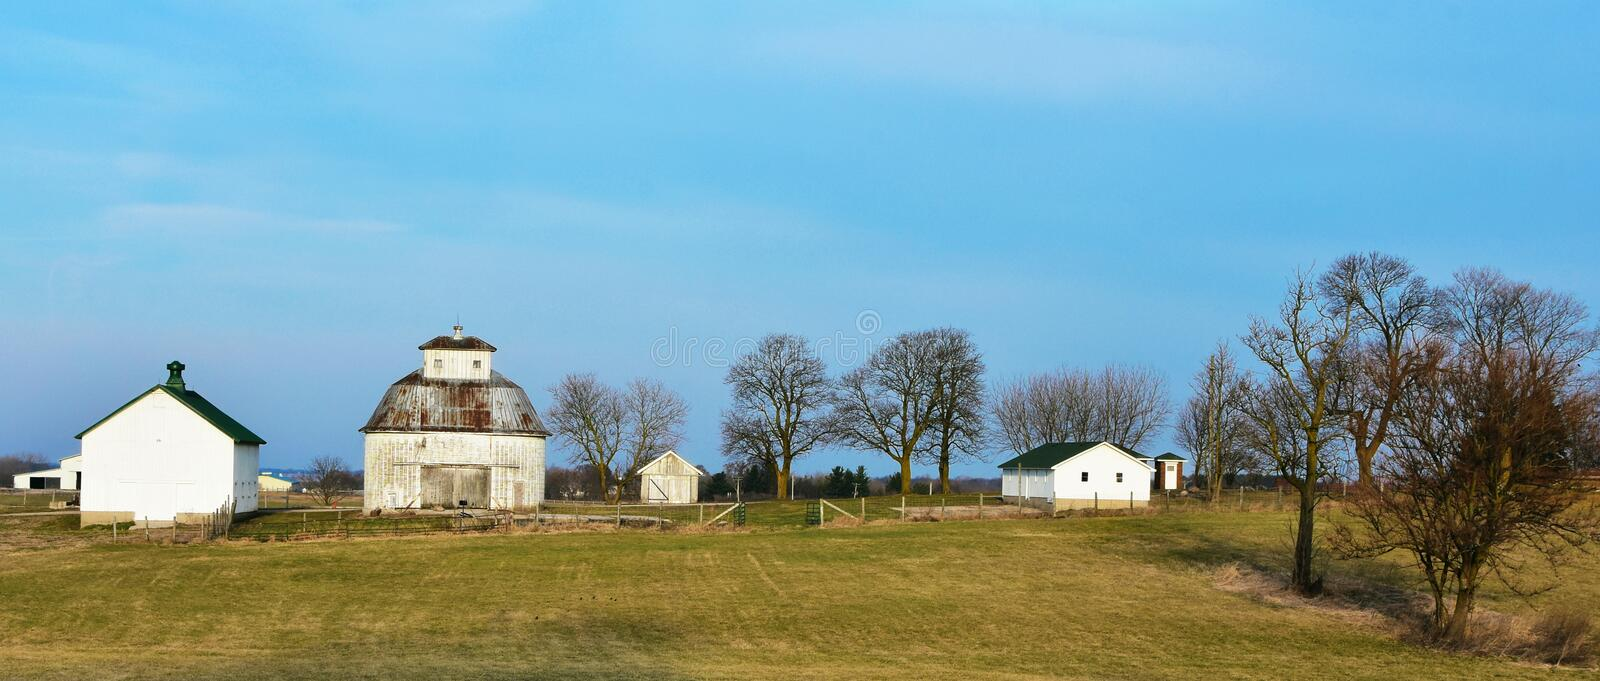 Round Barn Farmstead stock images